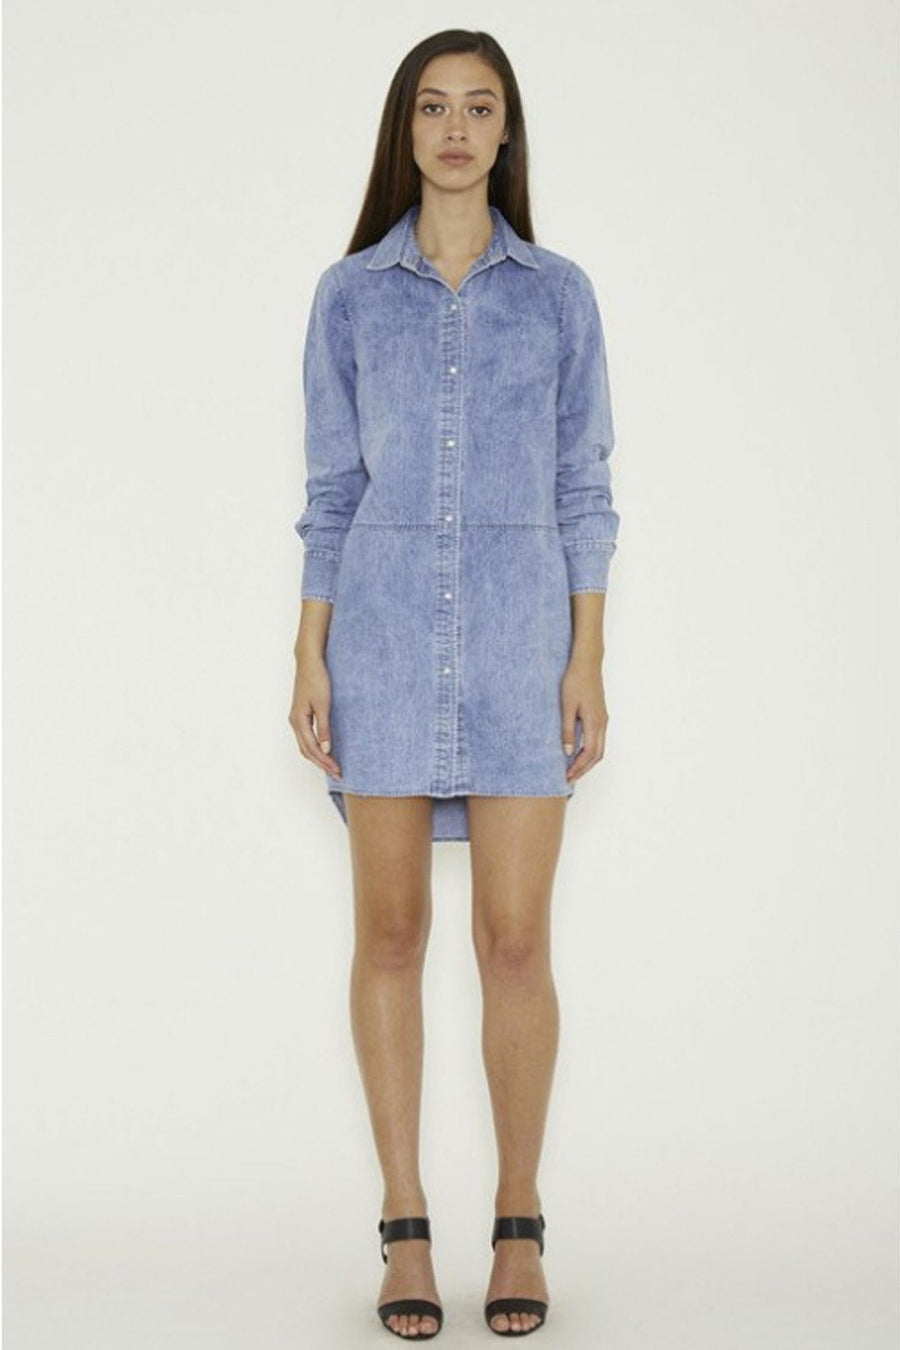 dahlia-row-shirt-dress-by-ruby-sees-all